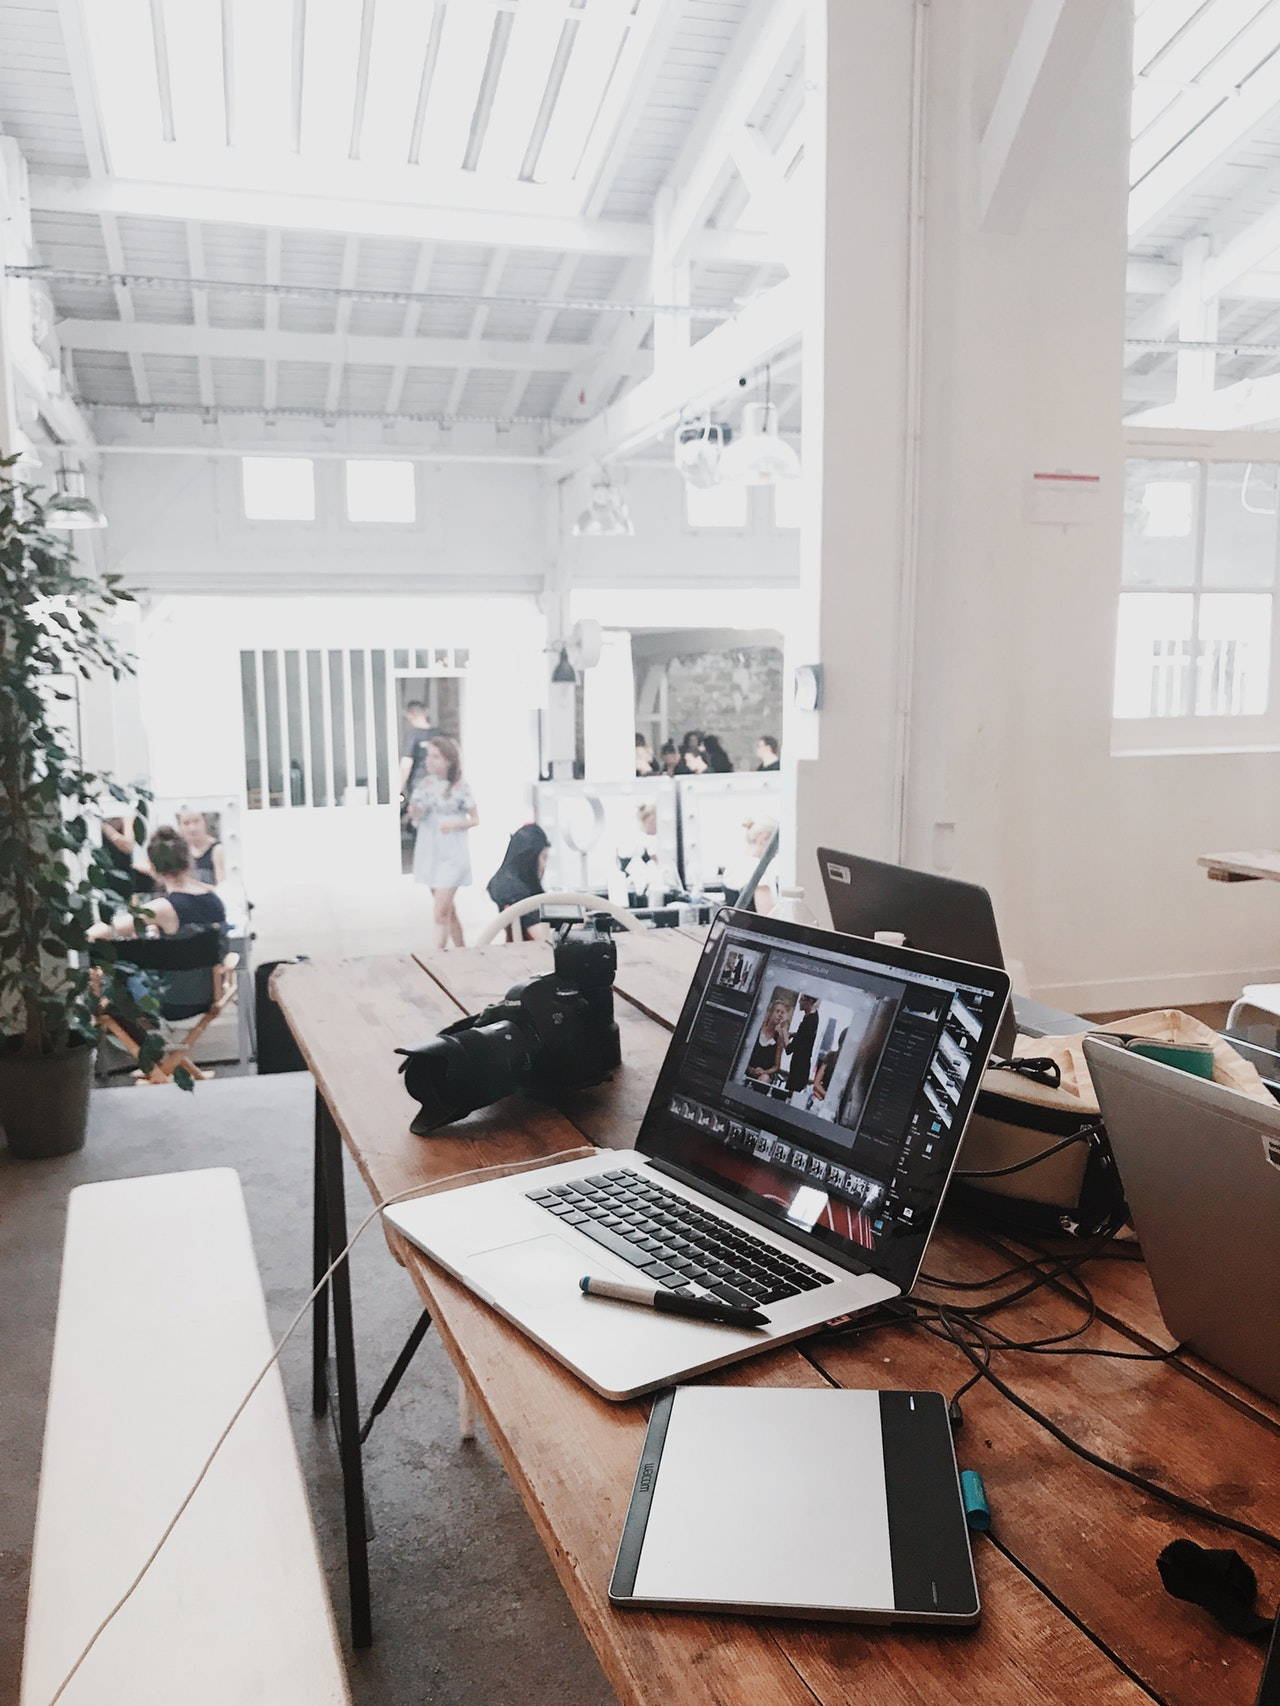 Active Coworking Space Article Image